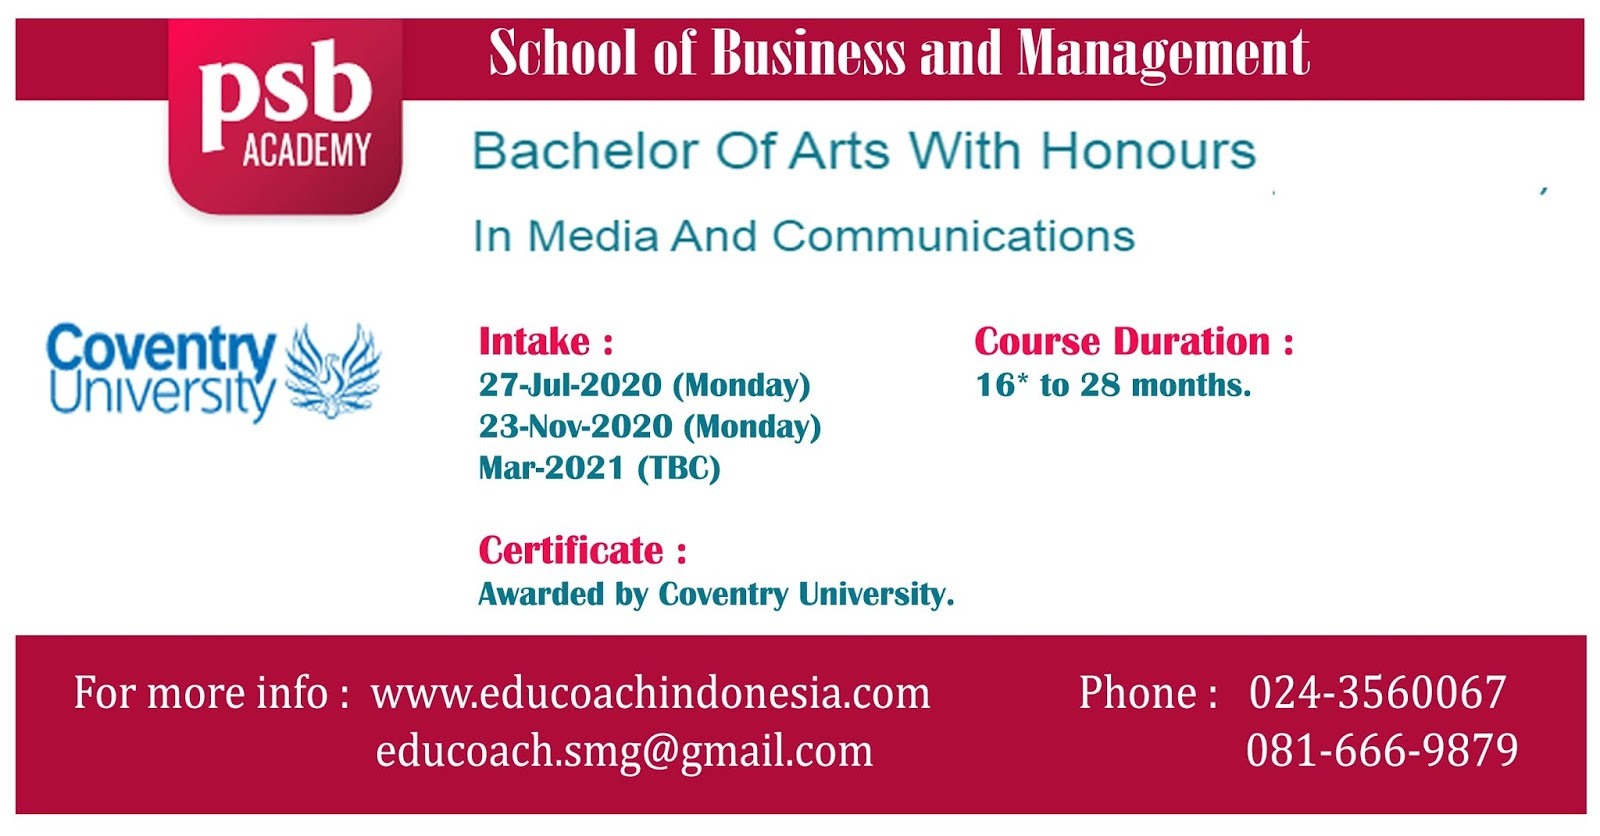 Bachelor Of Arts With Honours In Media And Communications | University of Coventry | PSB Academy Singapura